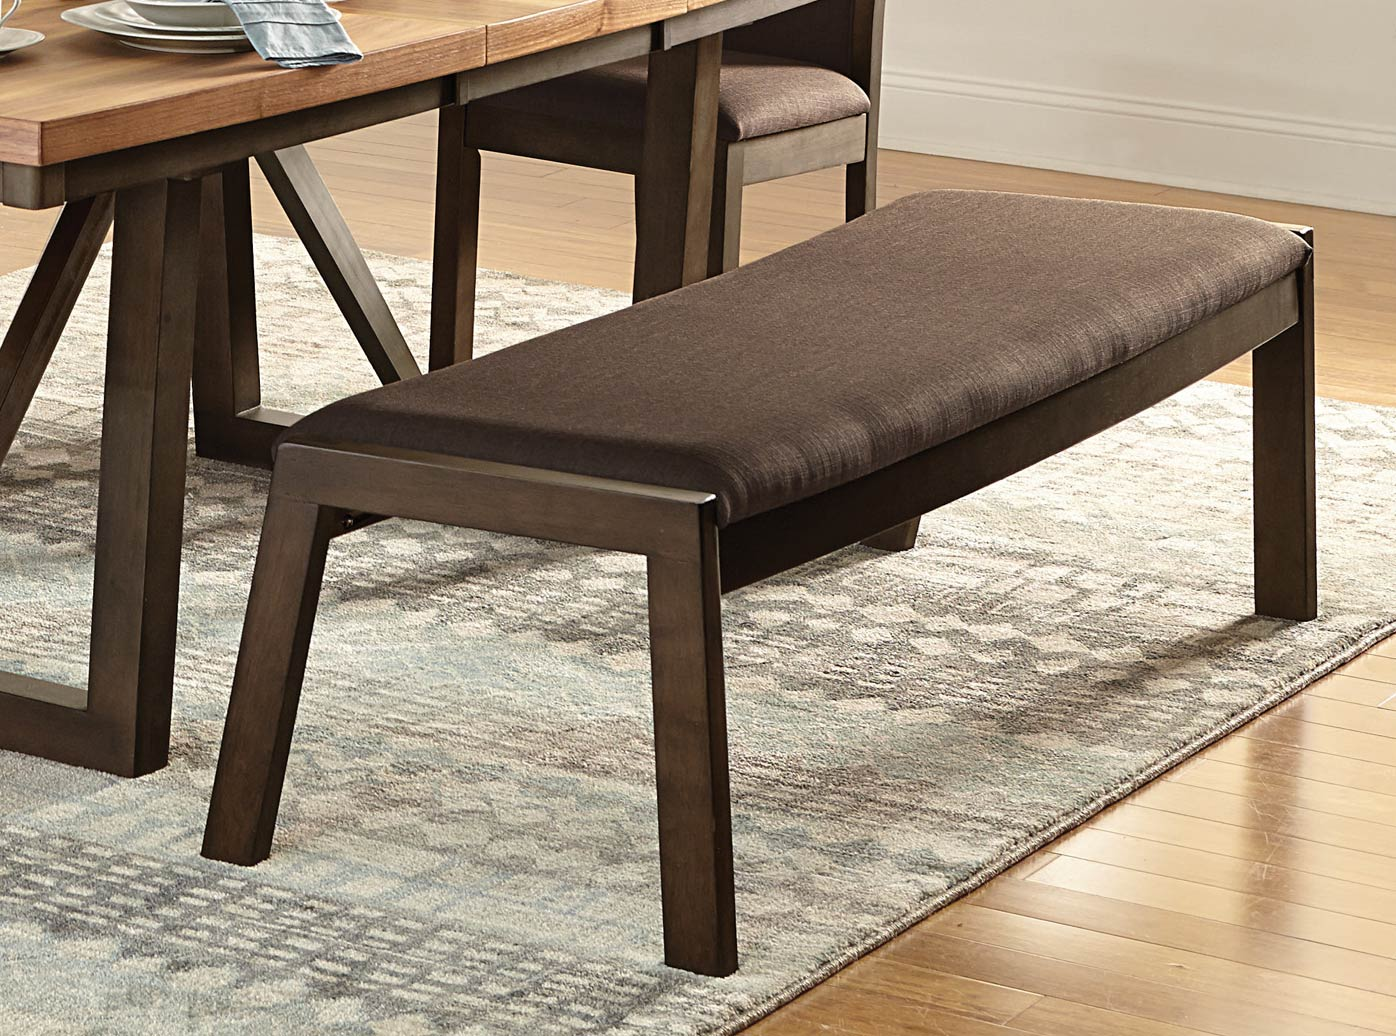 Homelegance Compson 60-inch Bench - Natural/Walnut